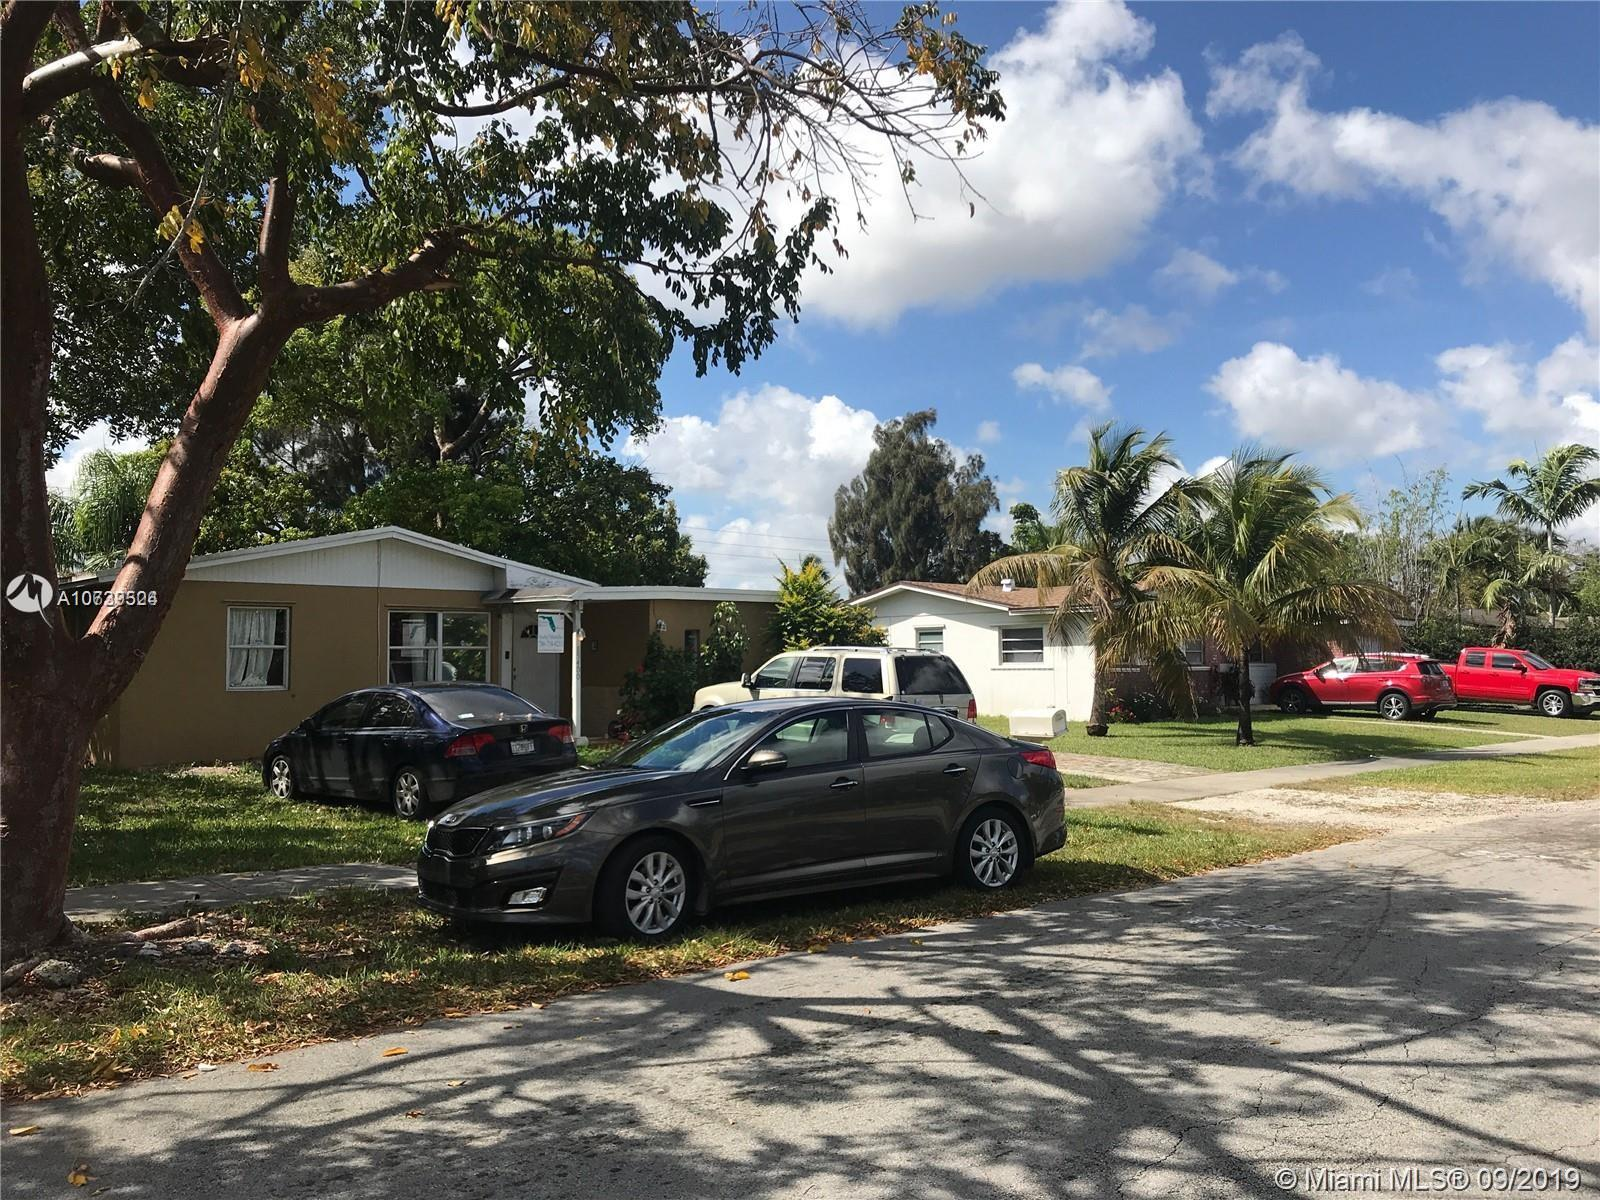 15400 SW 295th St, Homestead, FL 33033 - Homestead, FL real estate listing